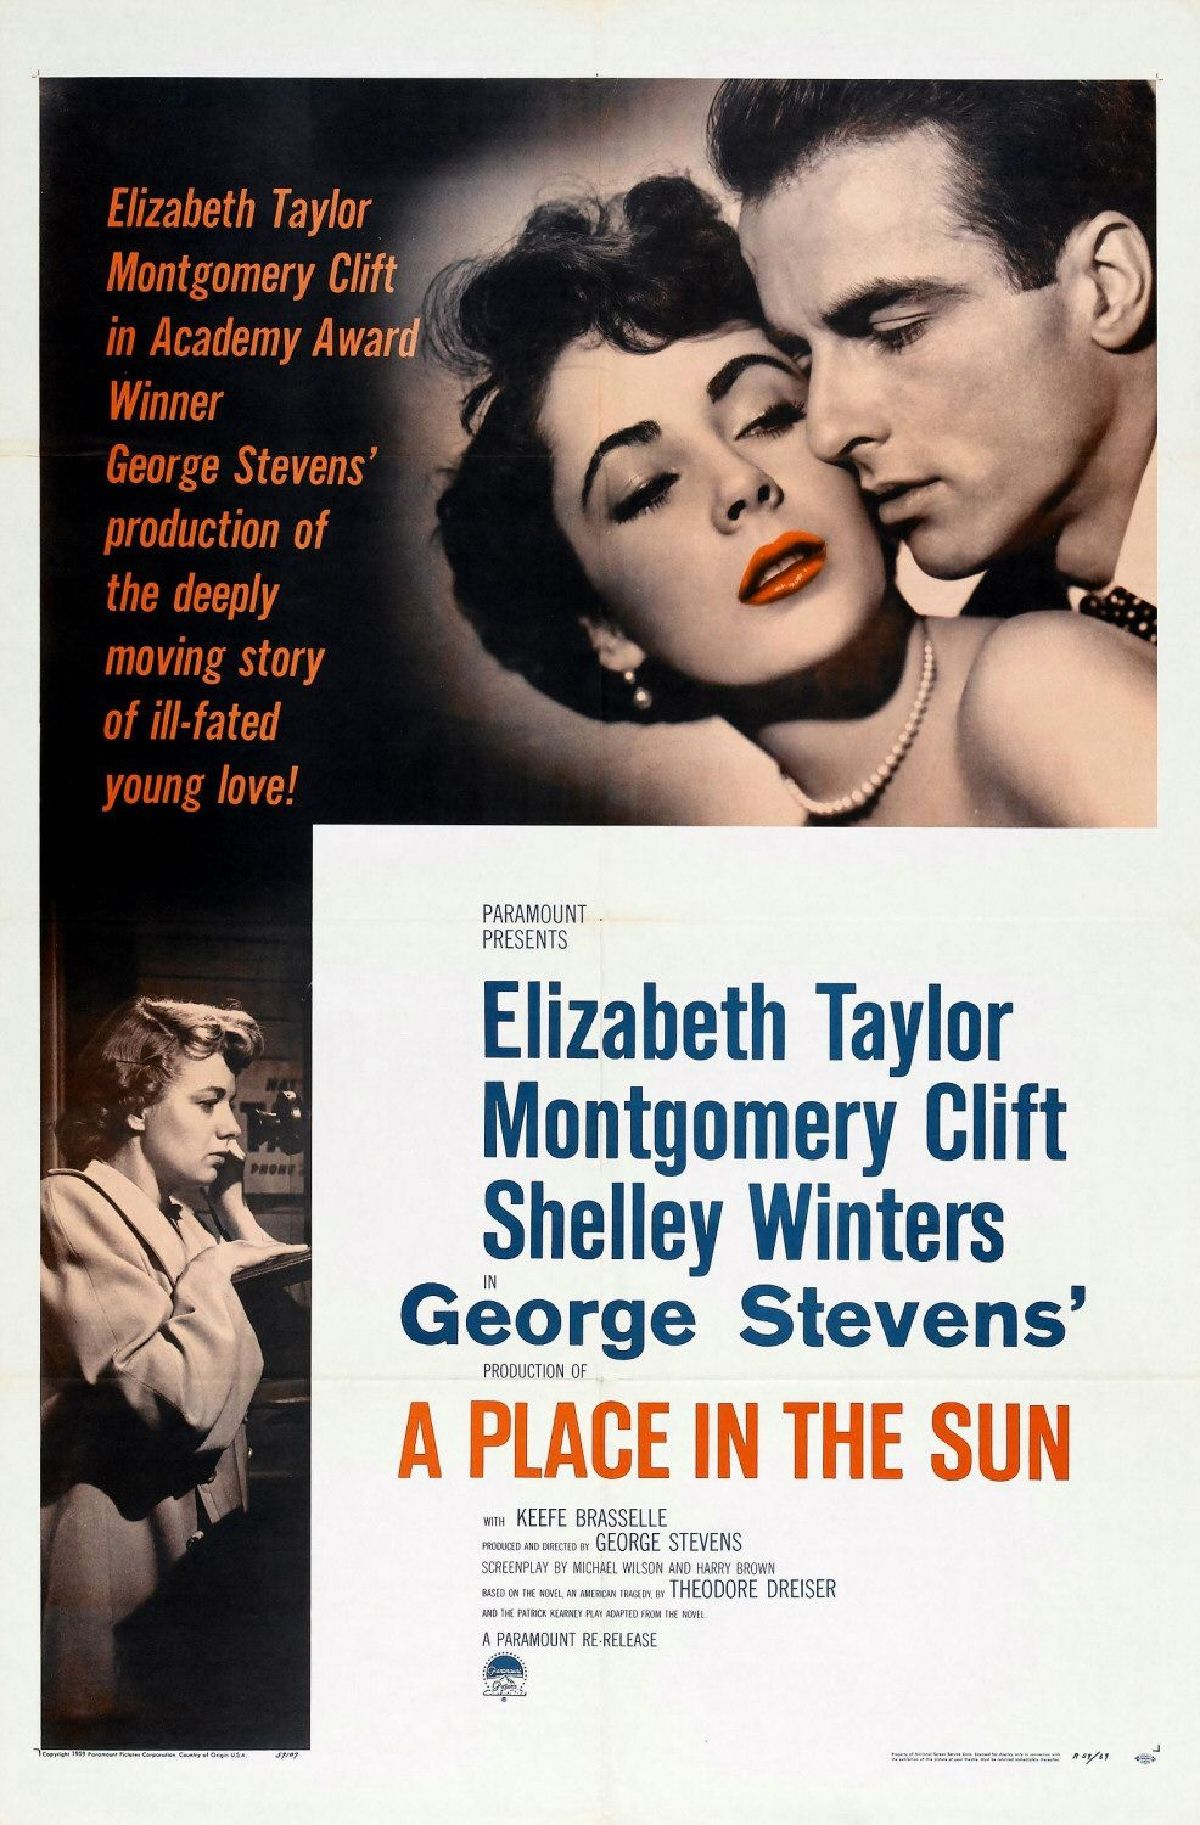 'A Place in the Sun' movie poster